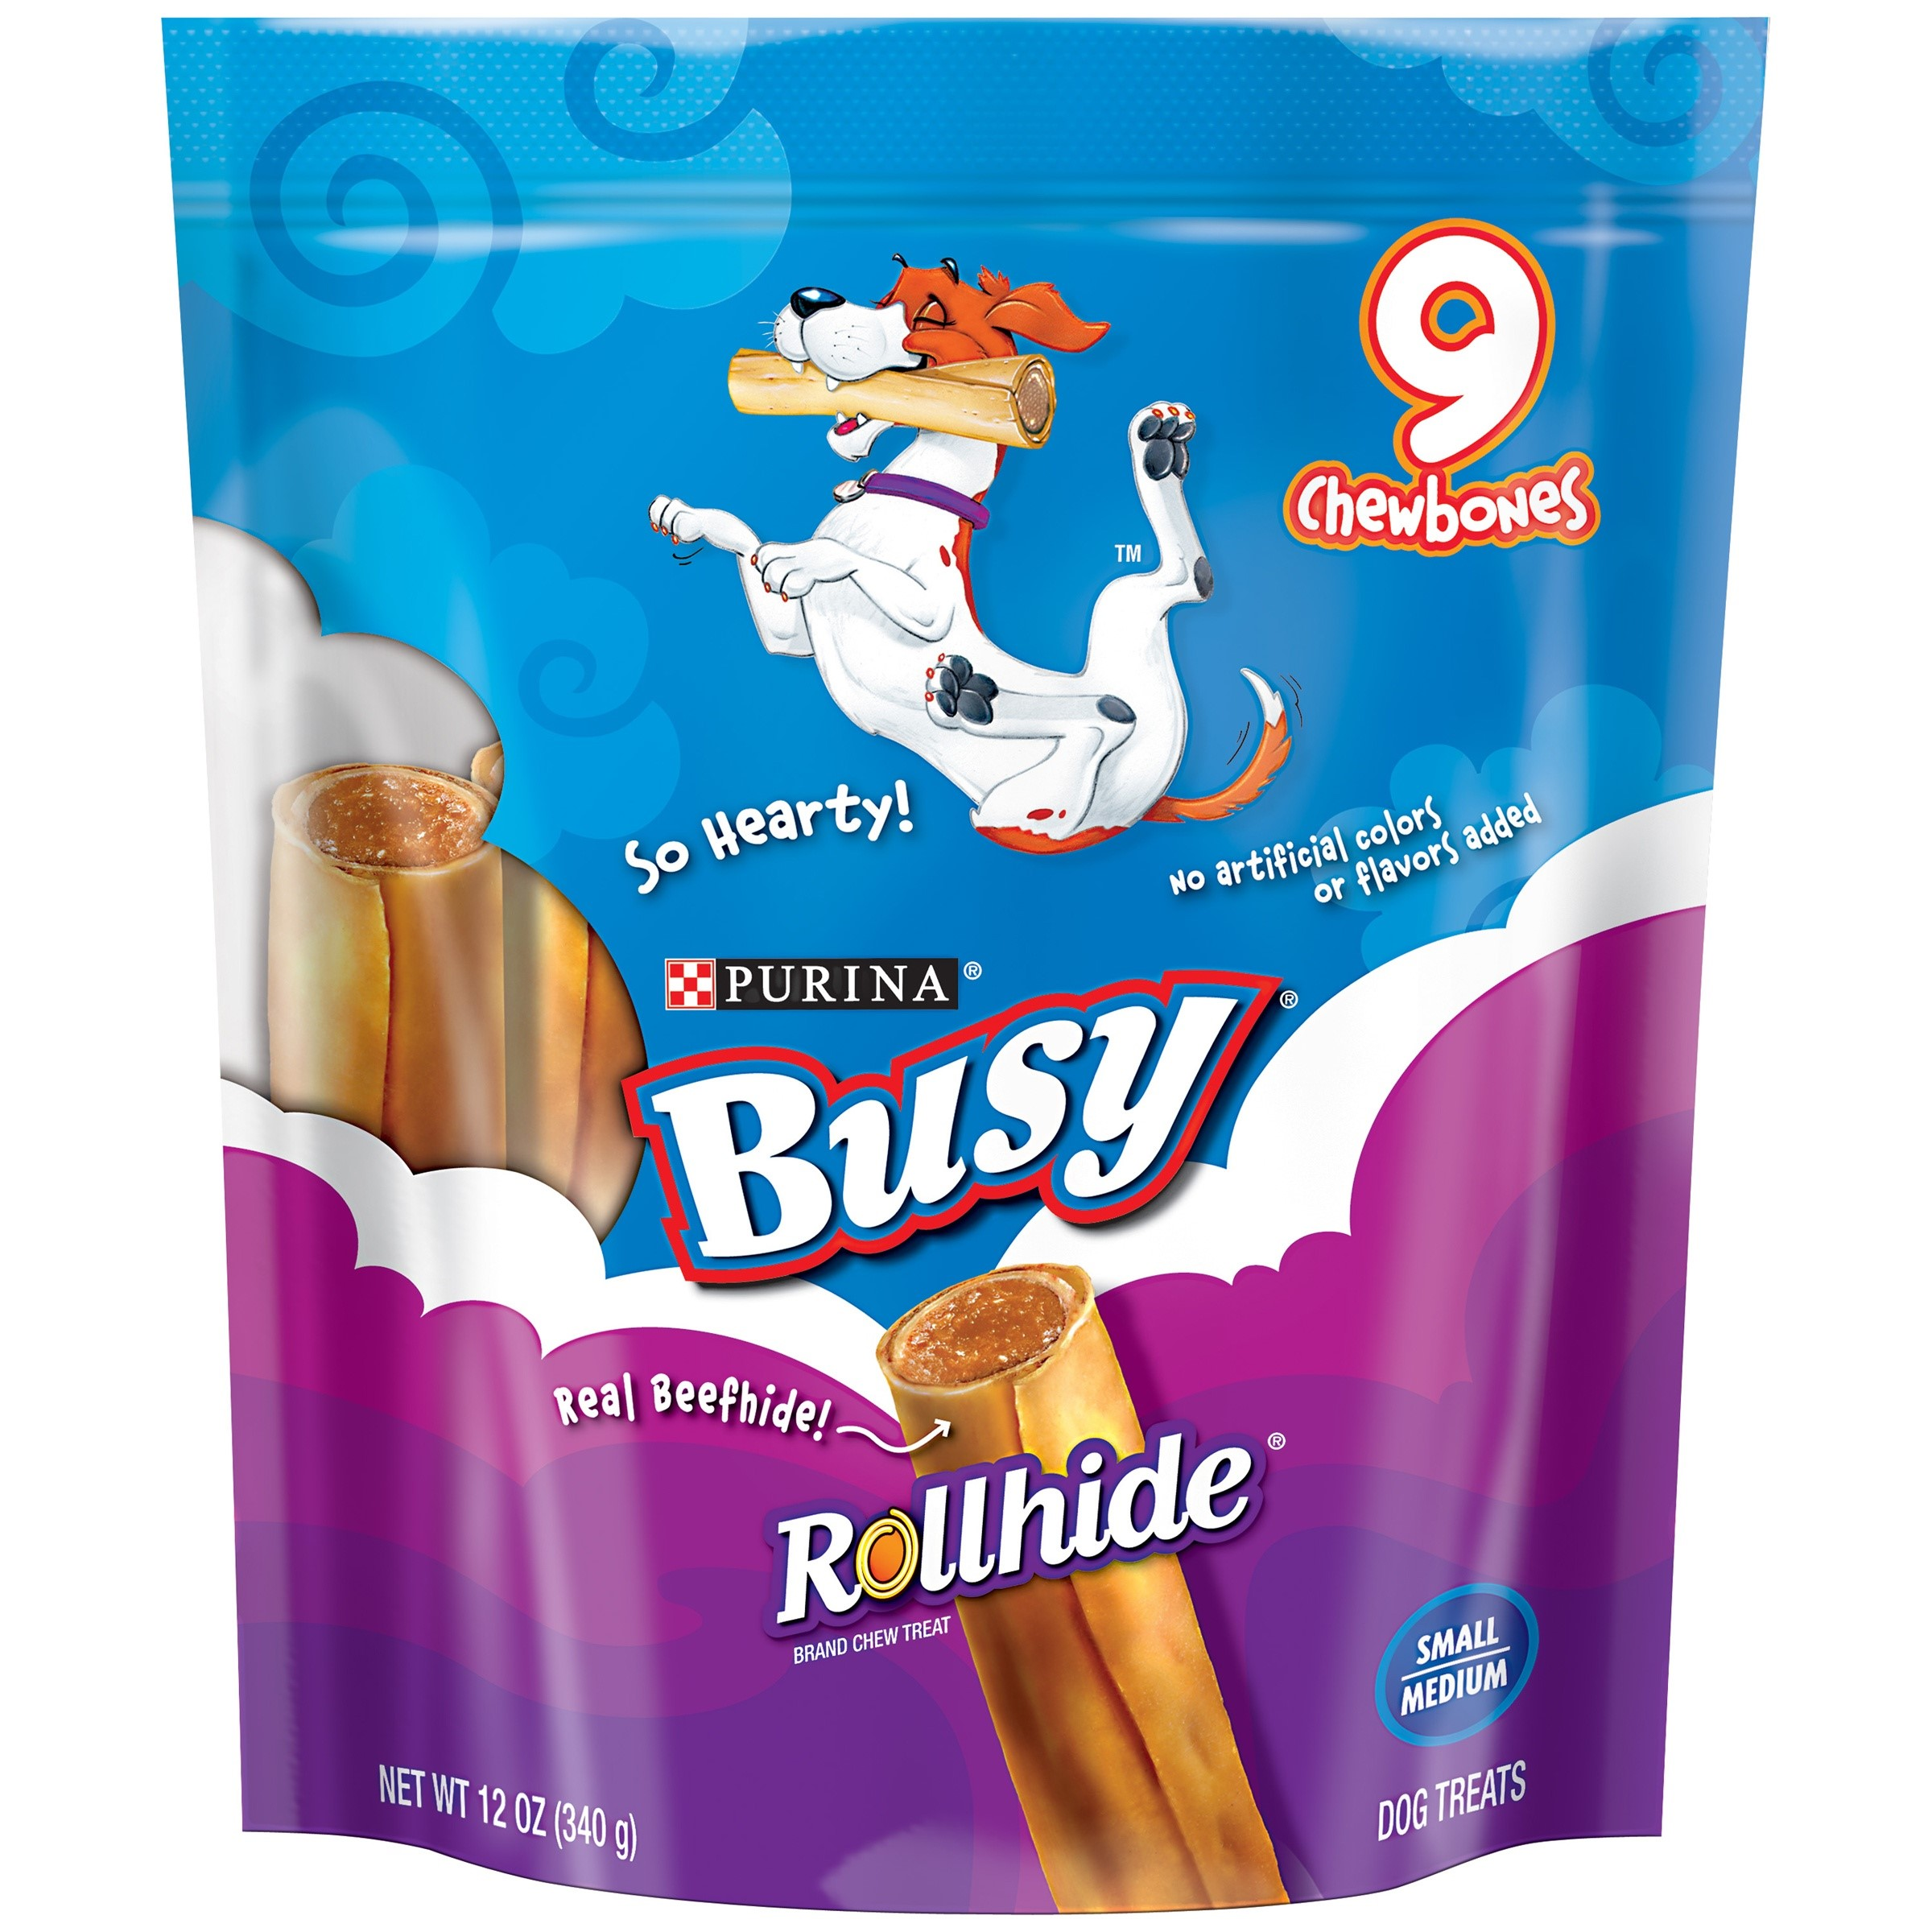 Purina Busy Rollhide Small/Medium Dog Treats 9 ct Pouch